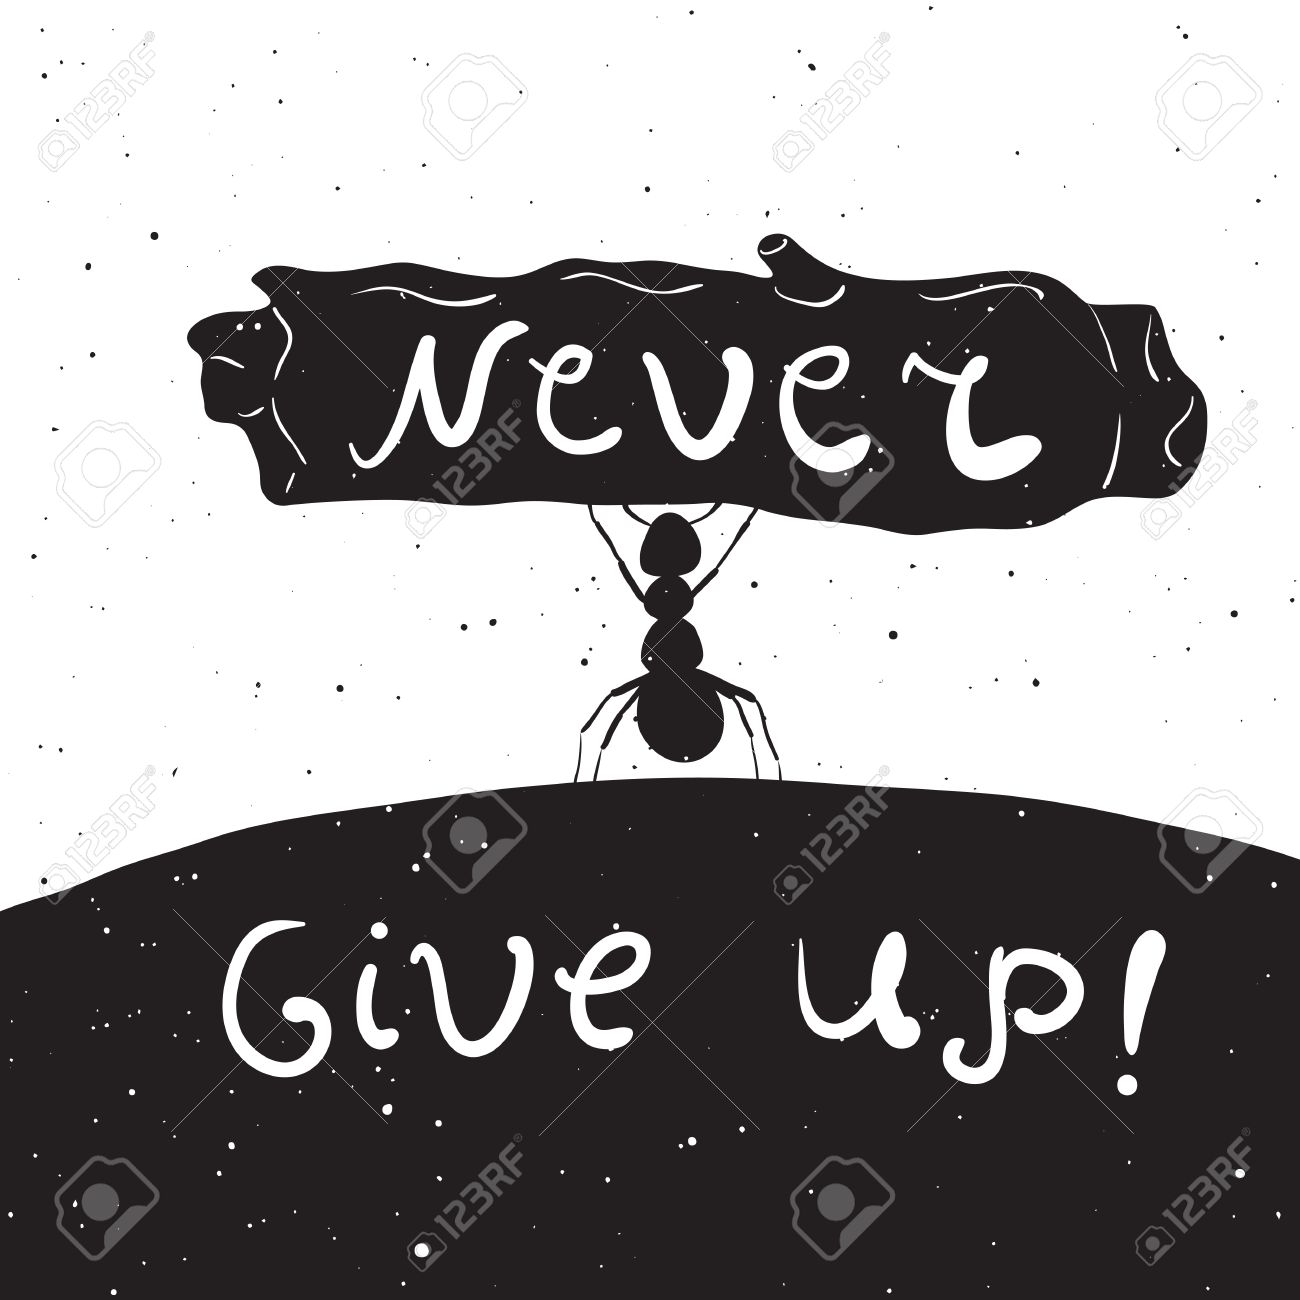 Drawn Style Rustic Illustration With Ant Inspirational Quote Never Give Up Vintage Background T Shirts Bags Greeting Card Design Typography